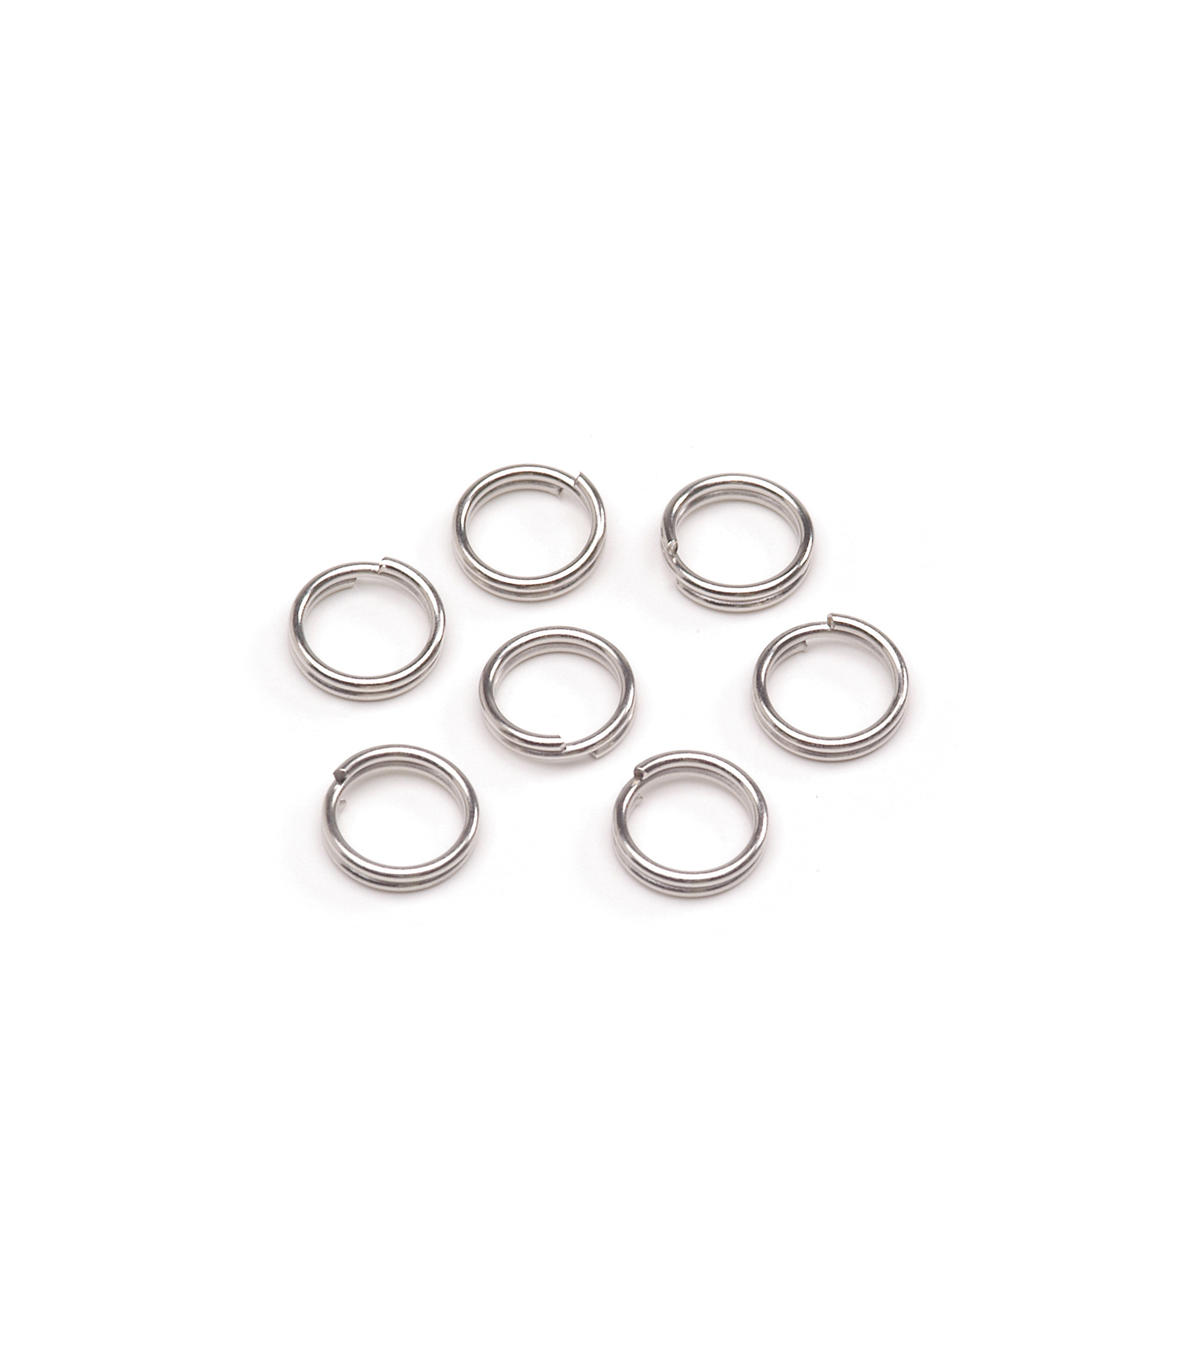 6mm Brass Double Rings, Nickel, 10pc/pkg